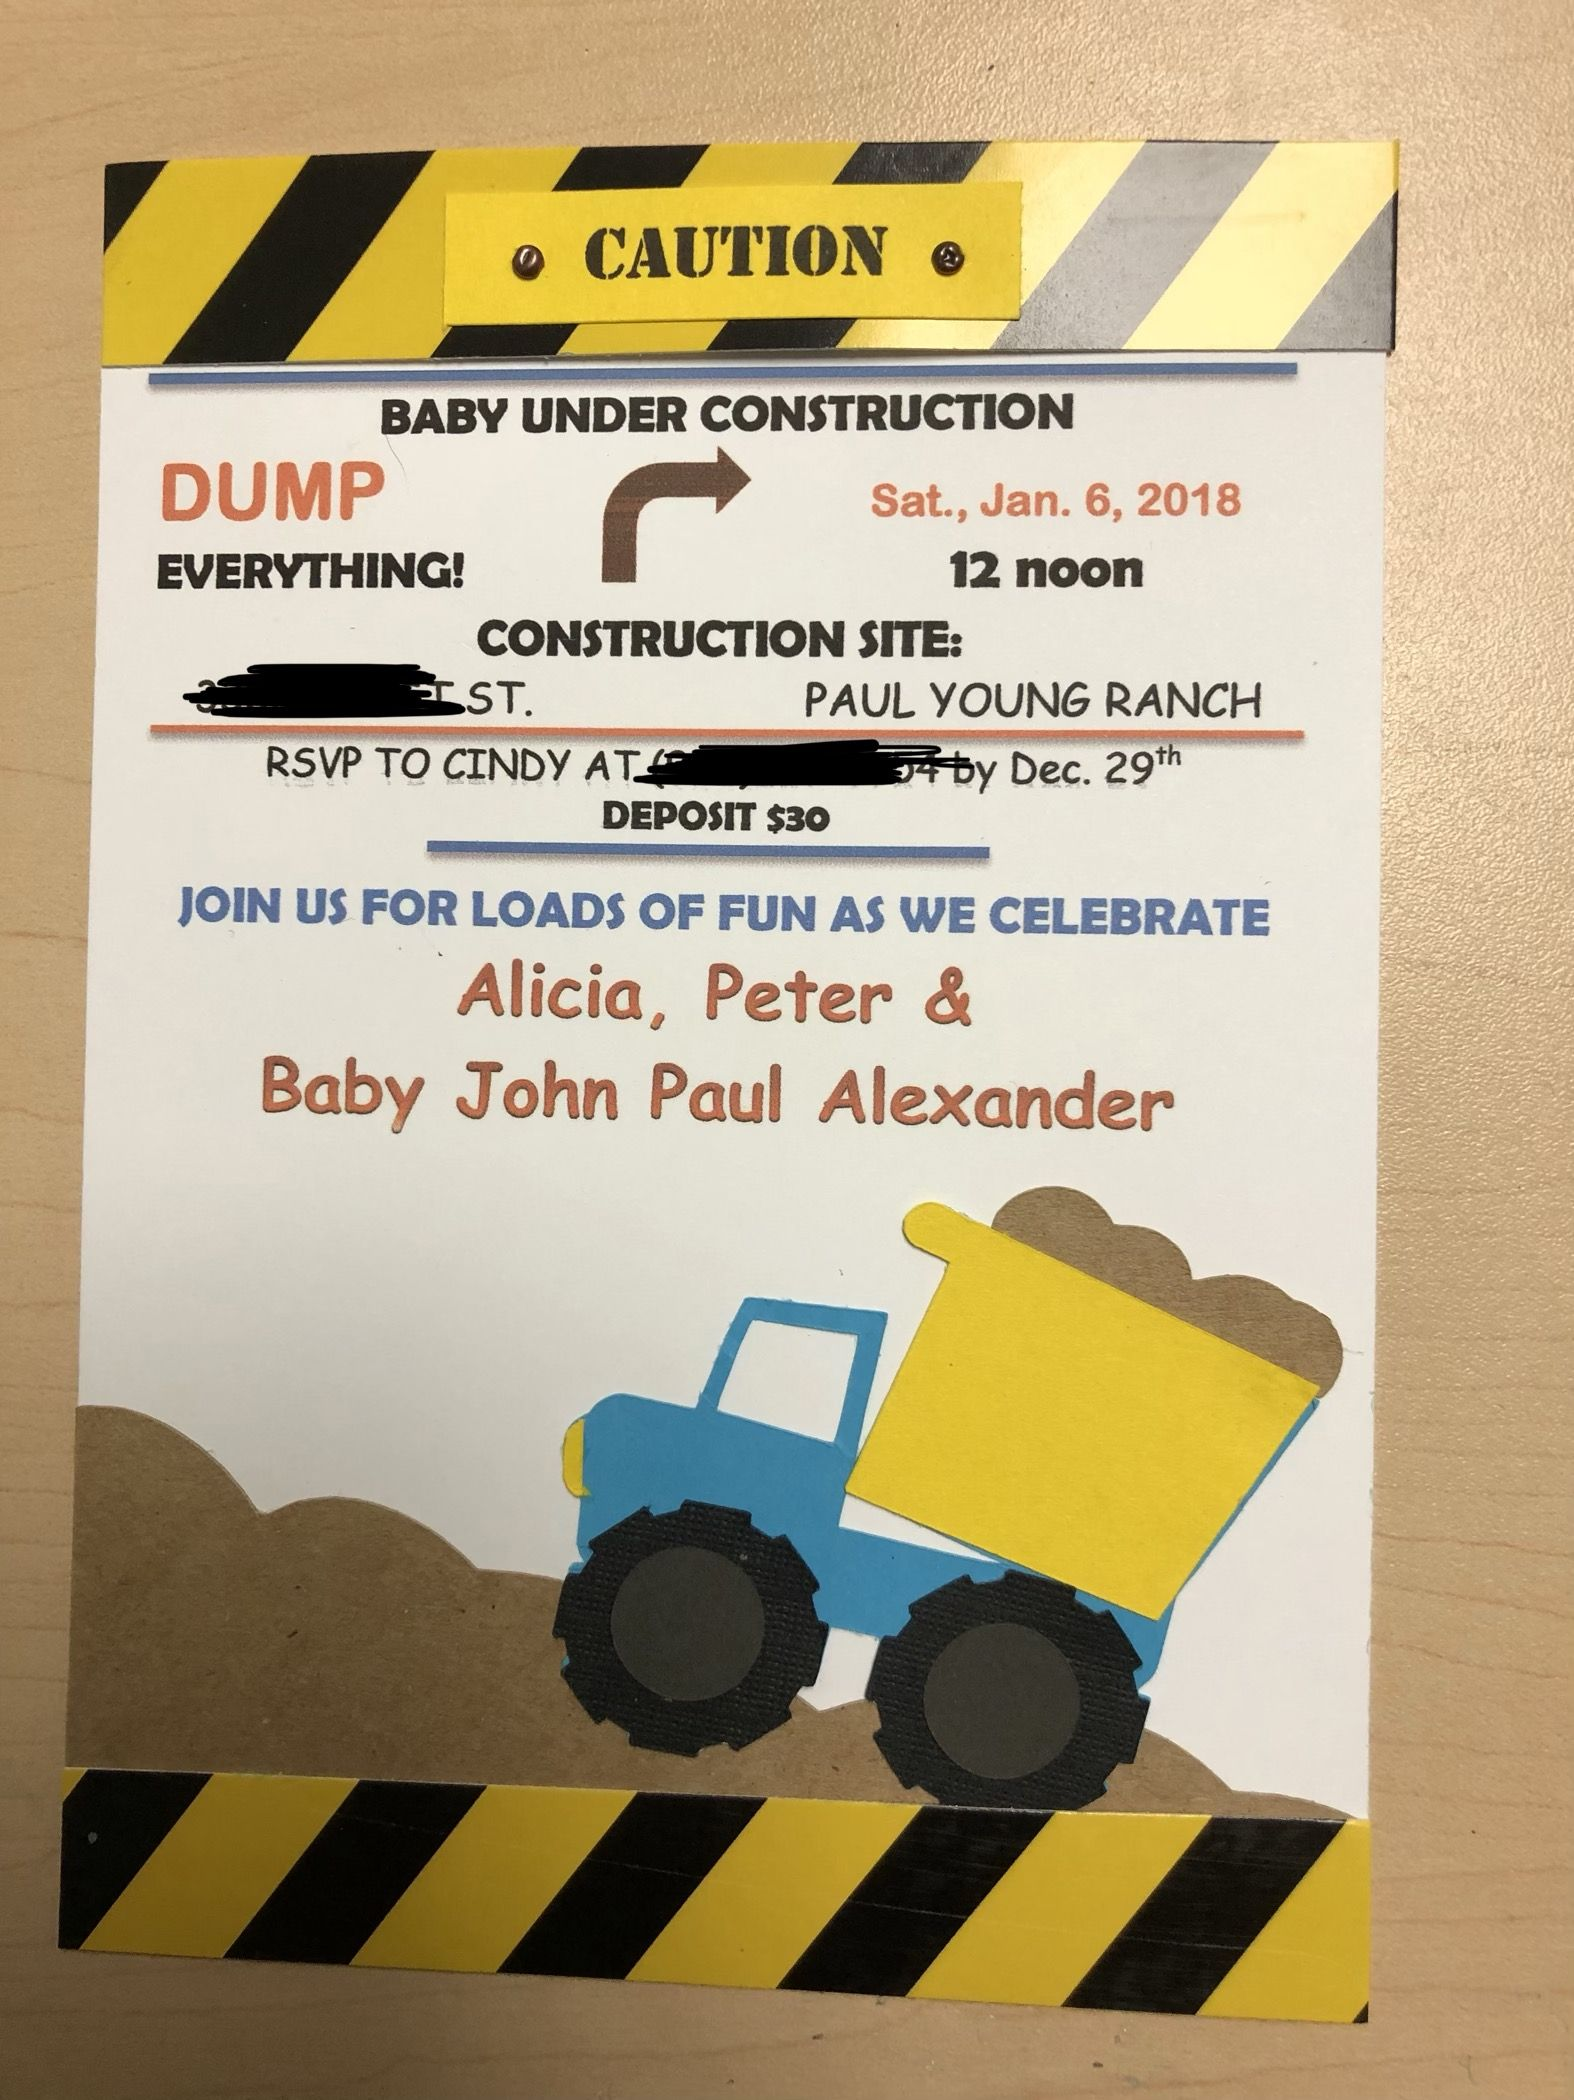 Wedding decorations balloons december 2018 Caution  Under Construction Baby Shower Invitation  baby shower